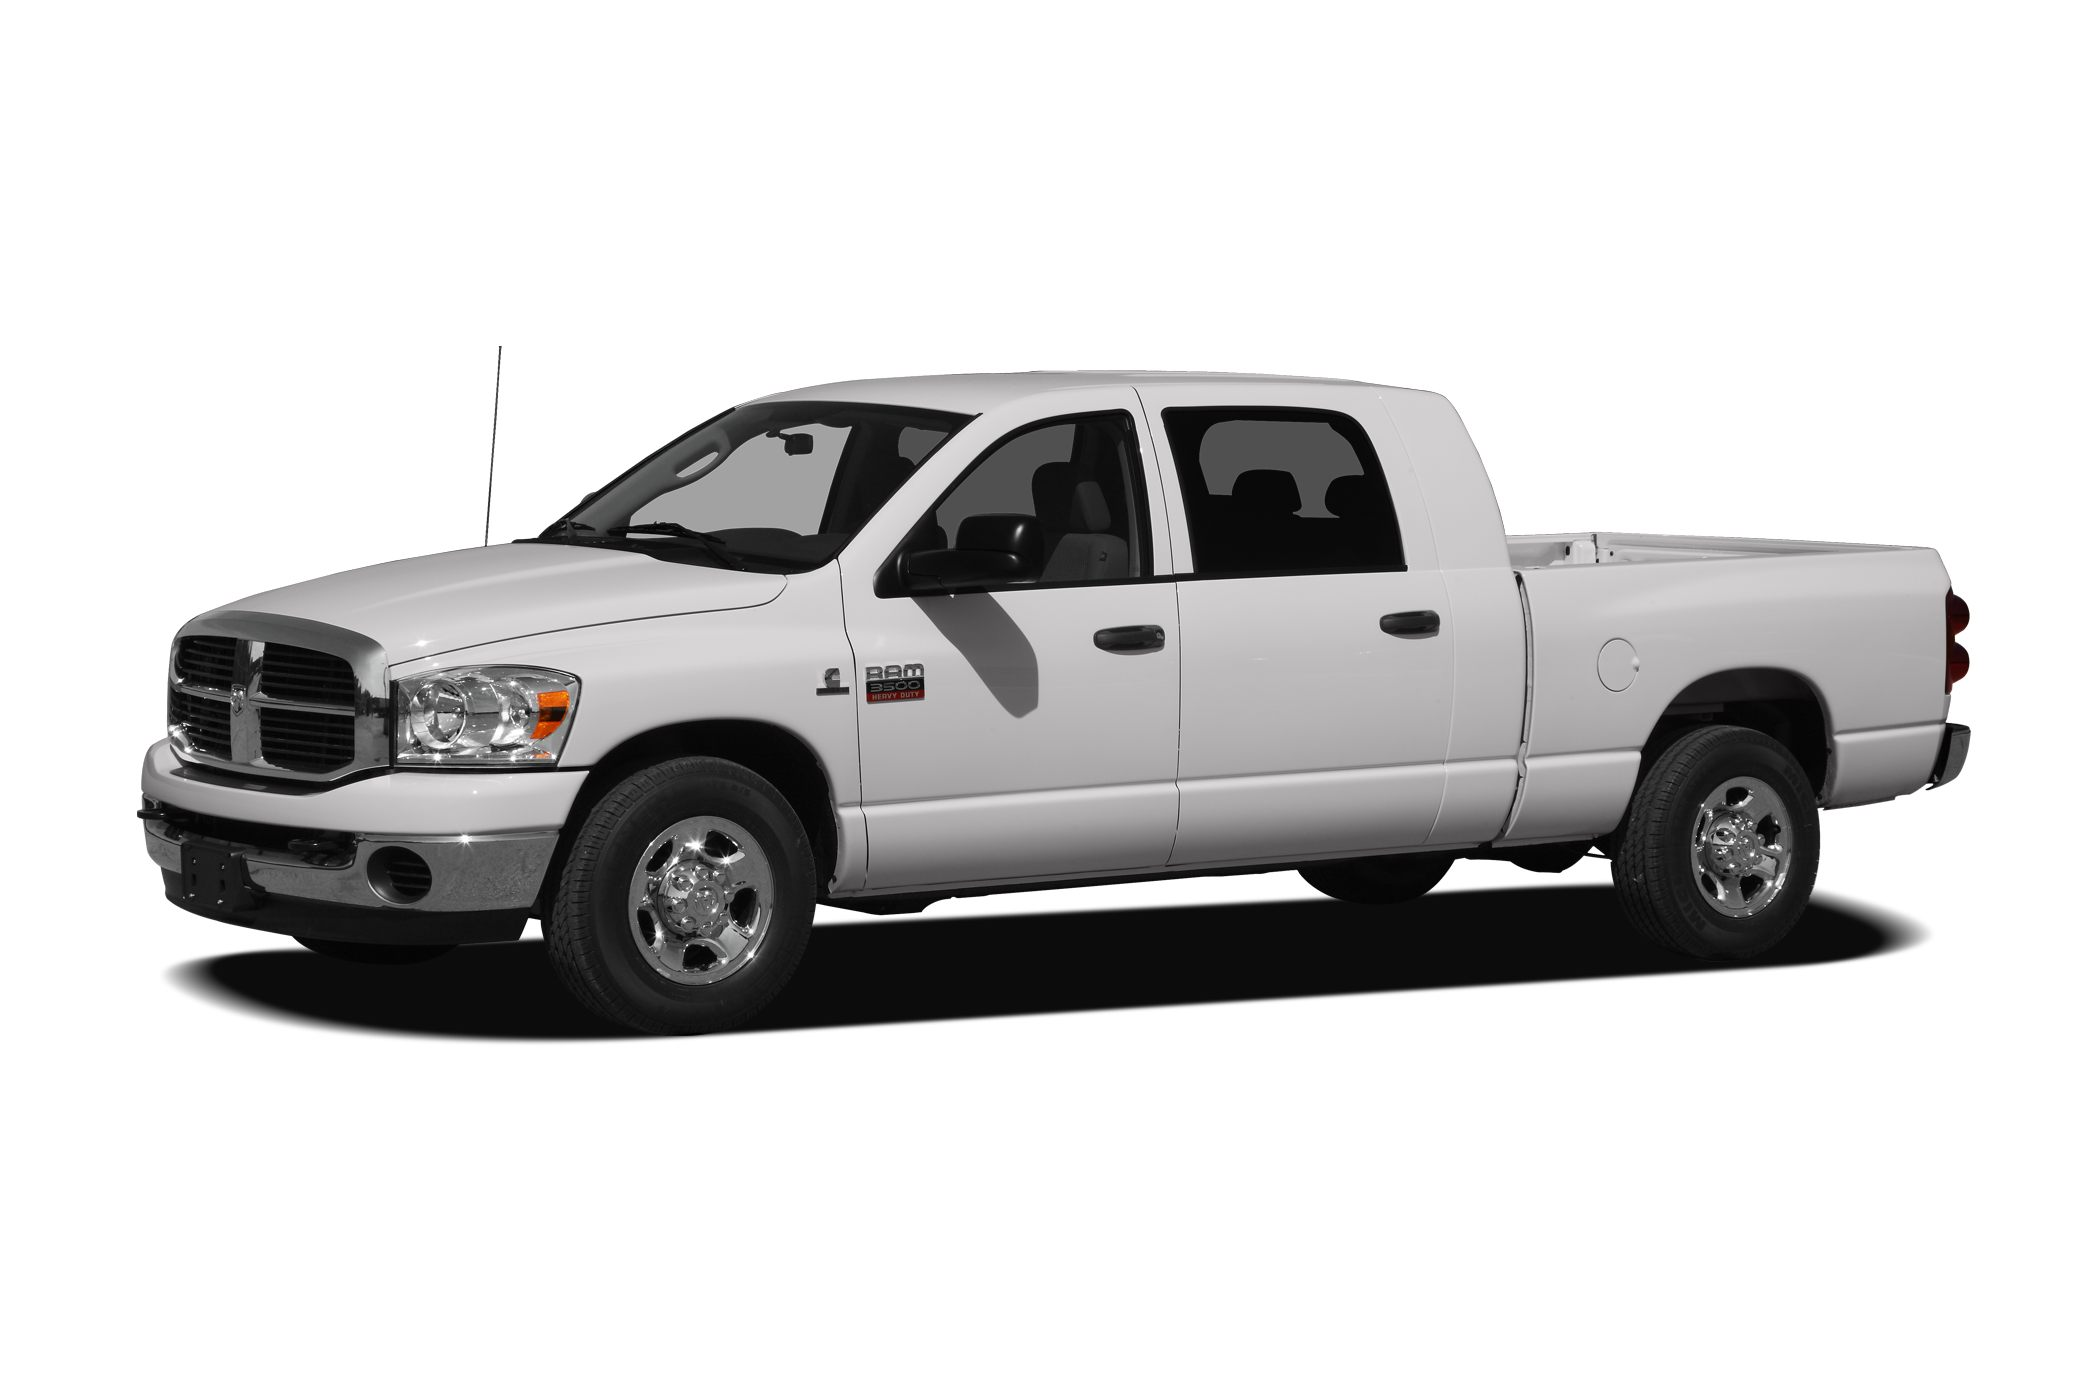 2008 Dodge Ram 3500 SLT Cummins 67L I6 Turbodiesel and 4WD Extended Cab Short Bed There is no